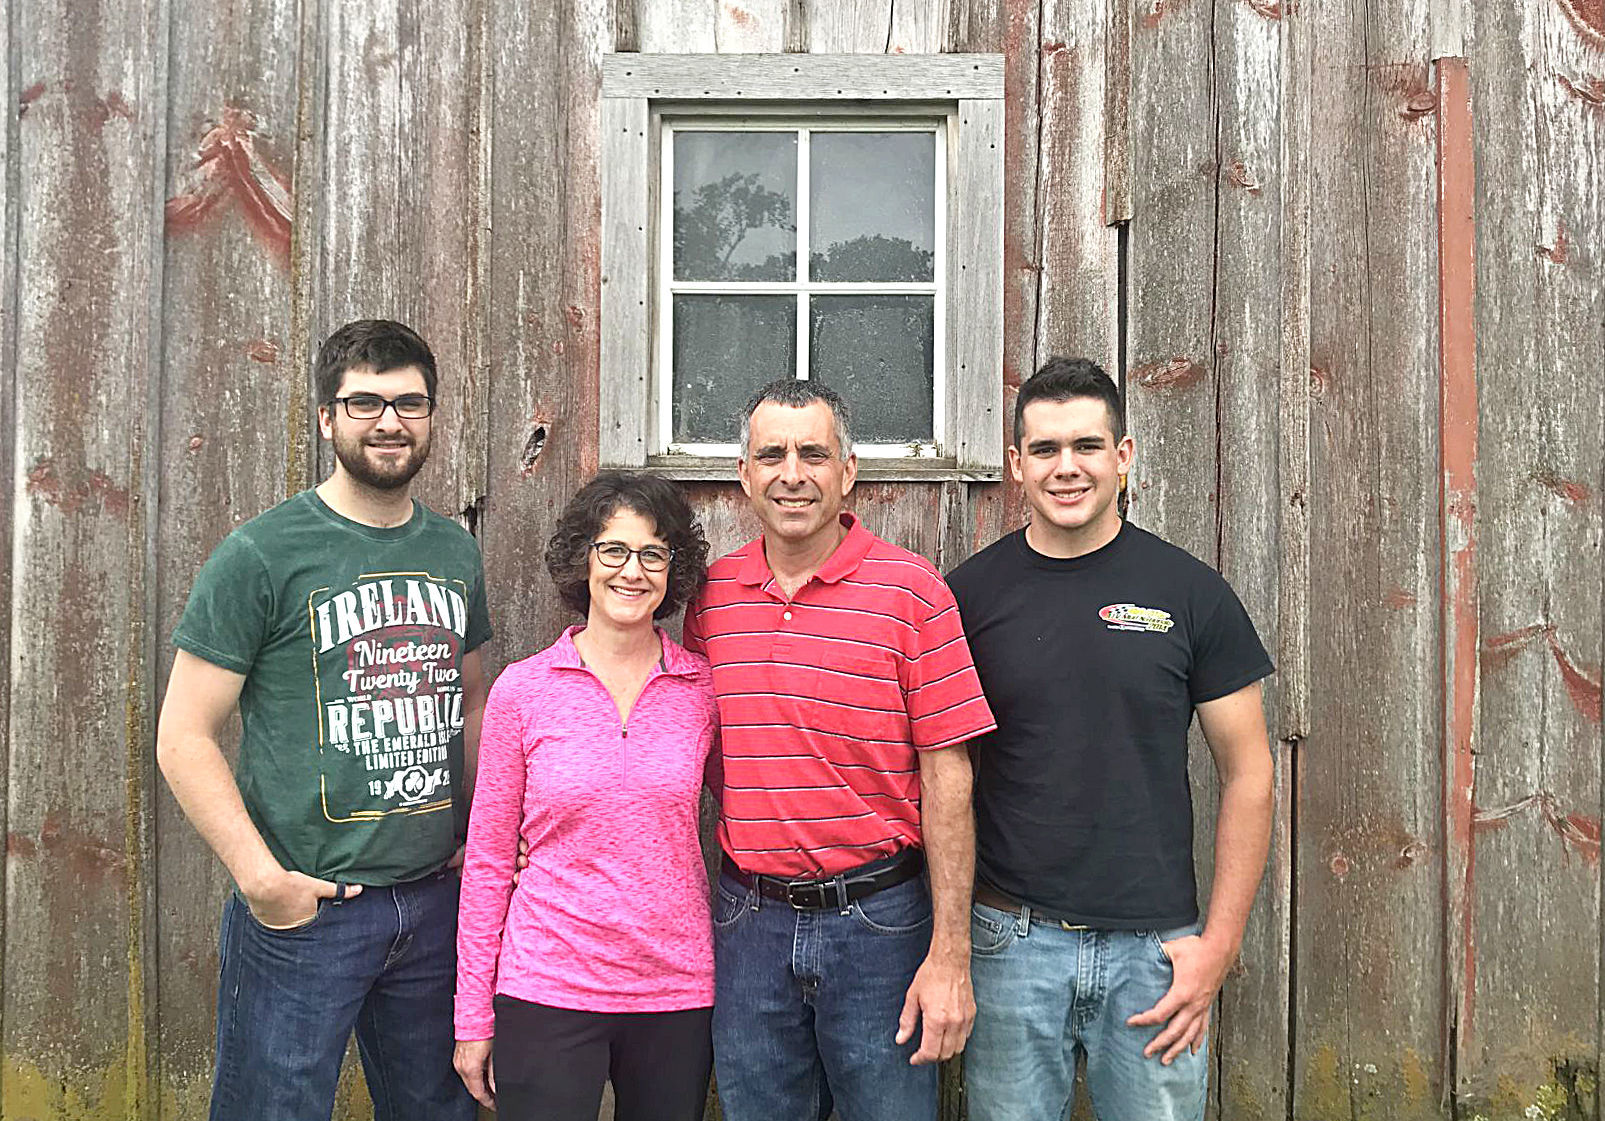 Uber involved LaCannes are Rice County's 2019 Farm Family of the Year